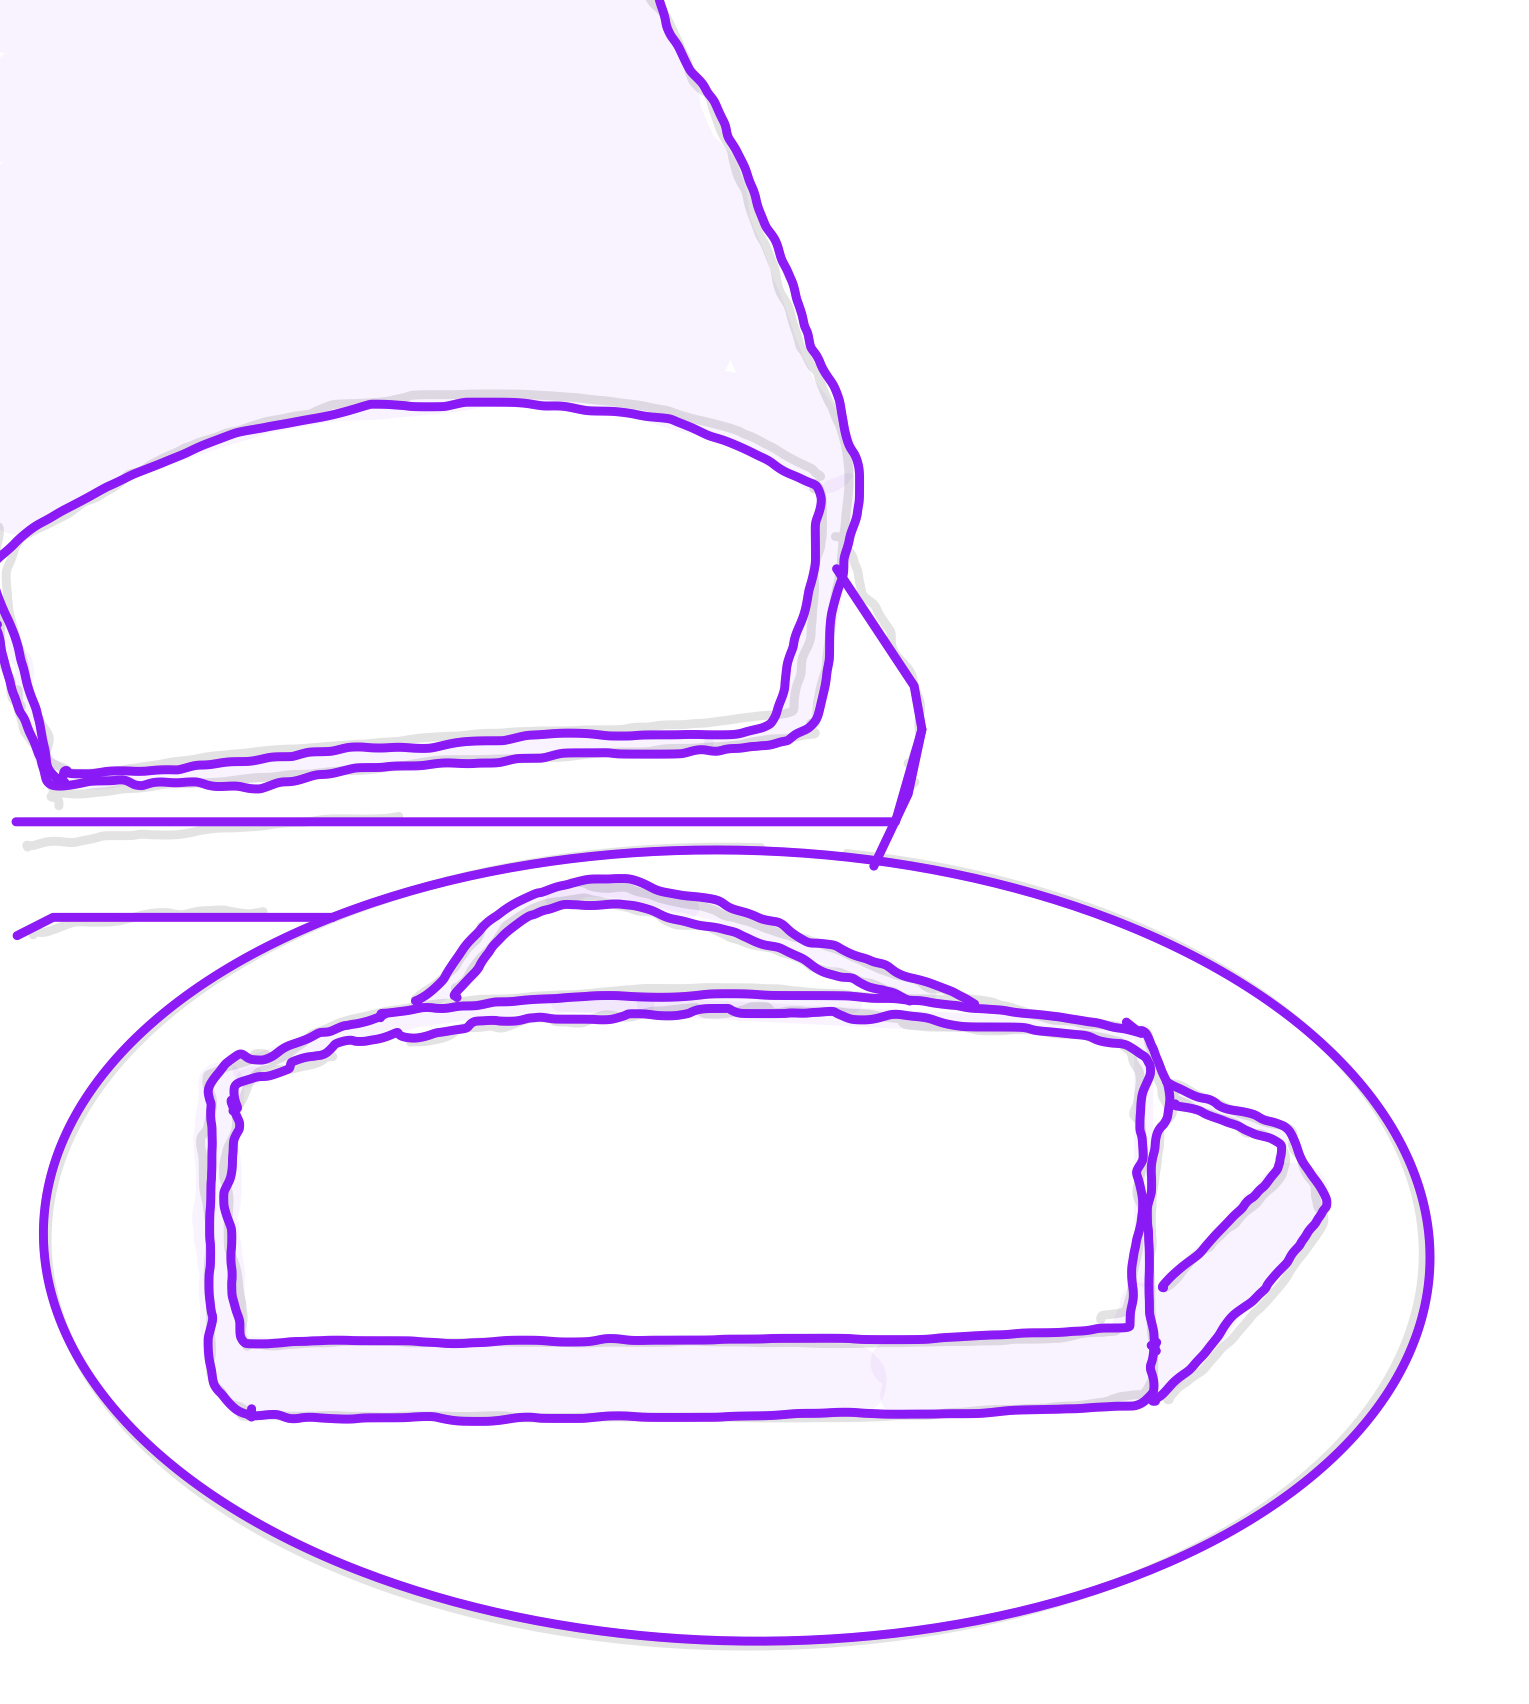 Drawing of slices of cake